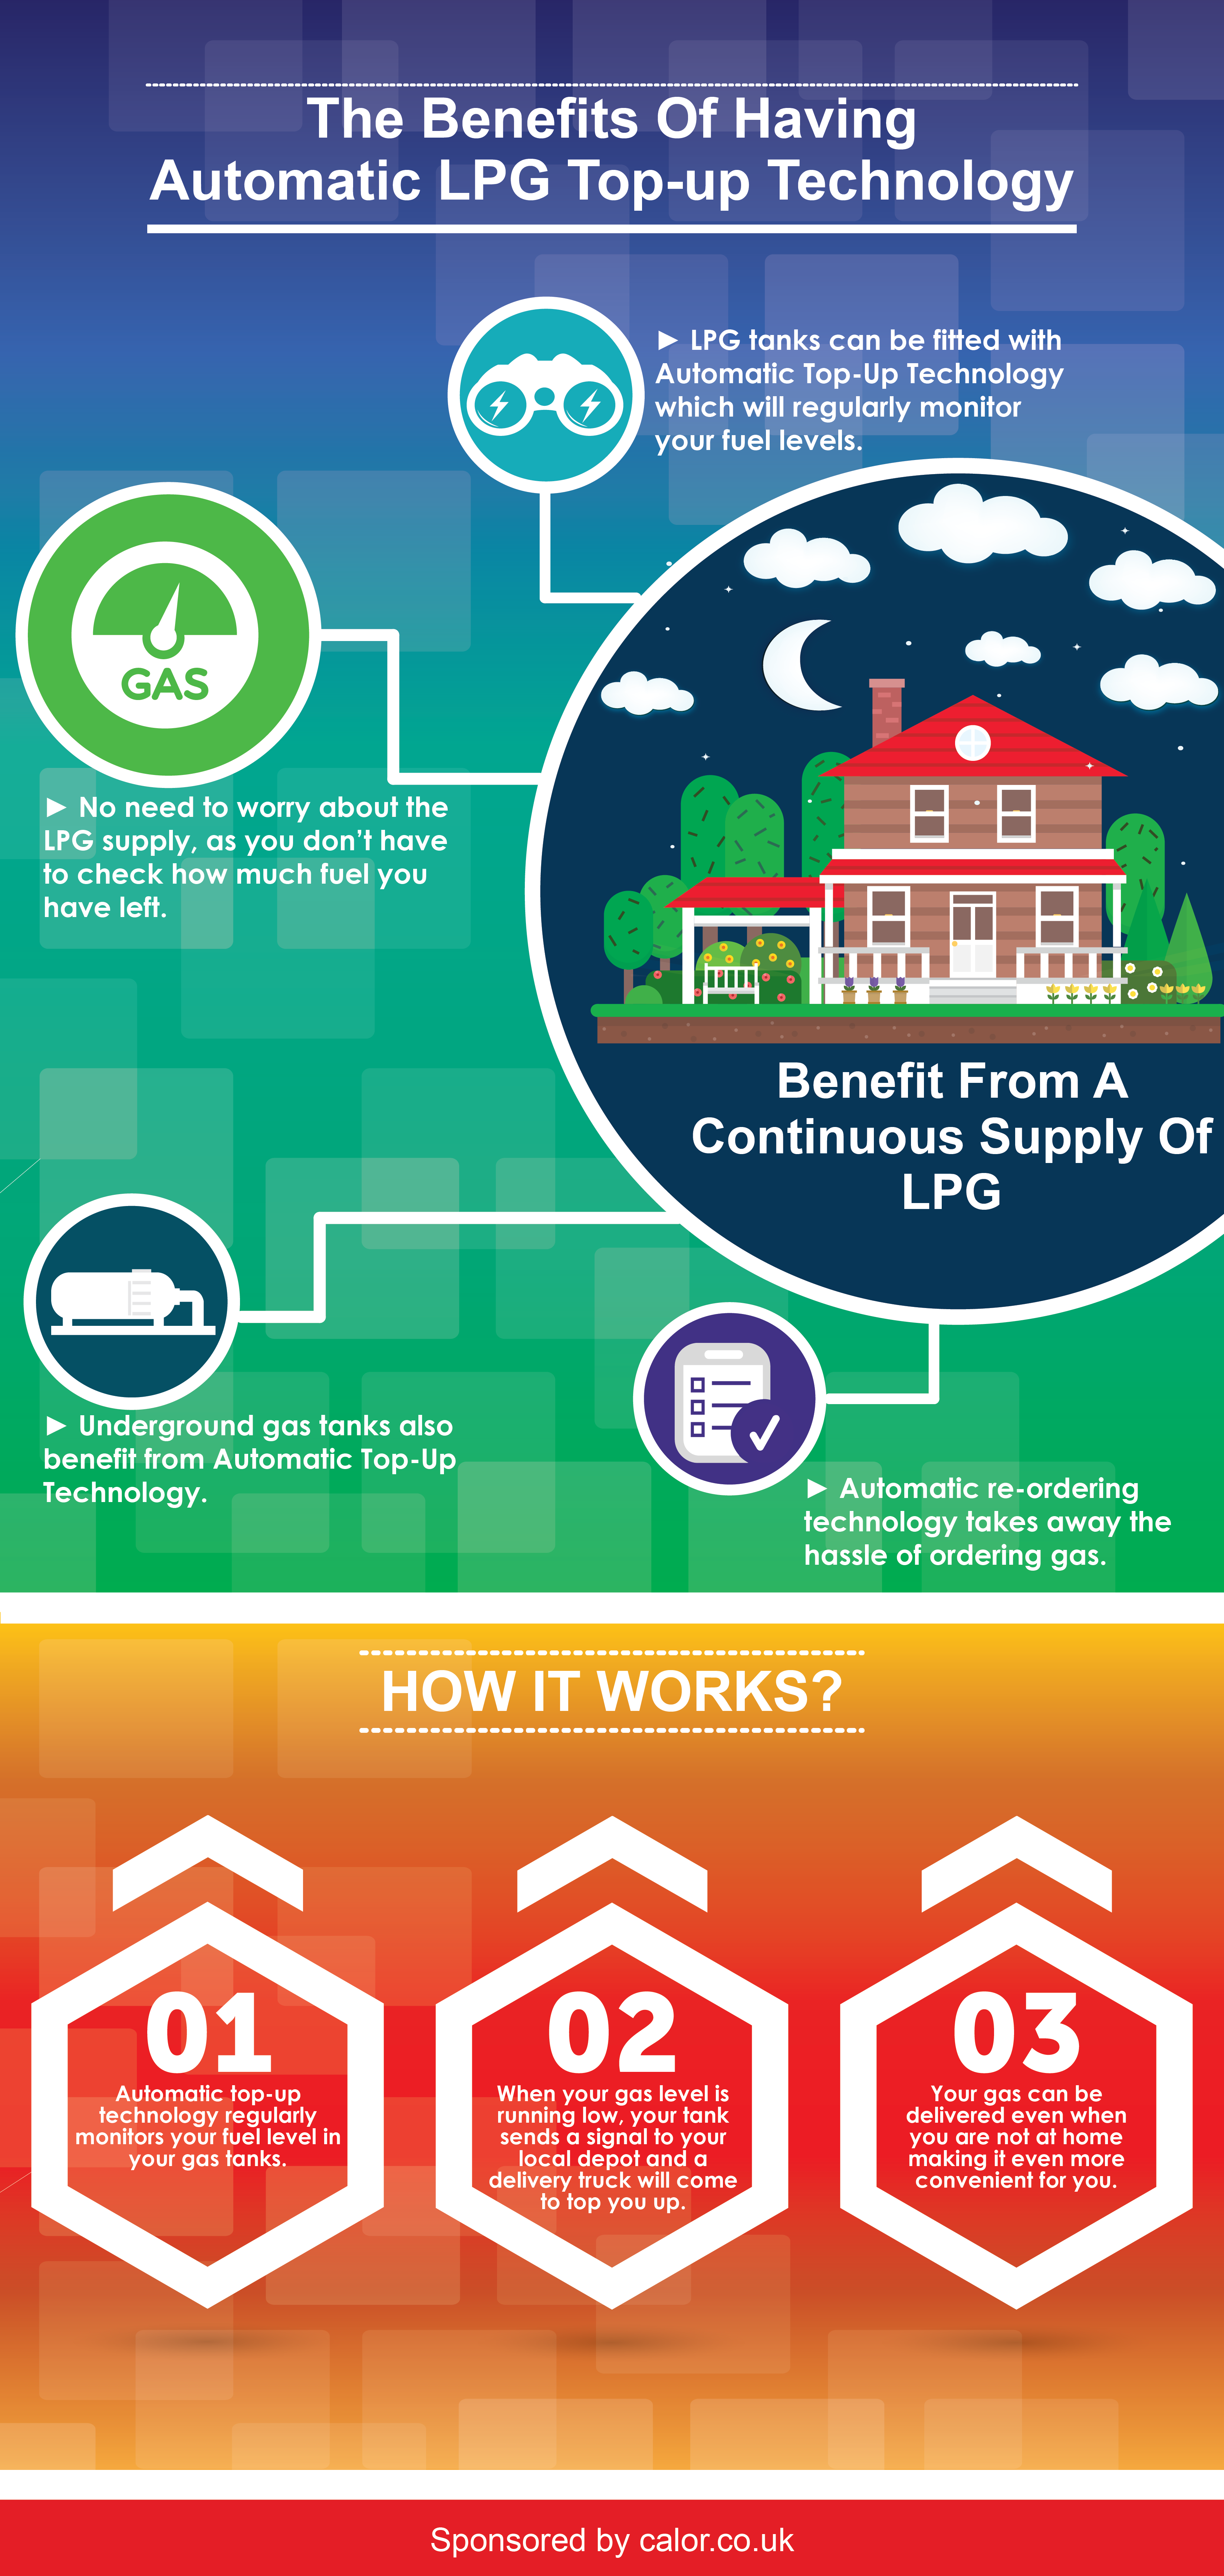 The Benefits of Having Automatic LPG Top-up Technology